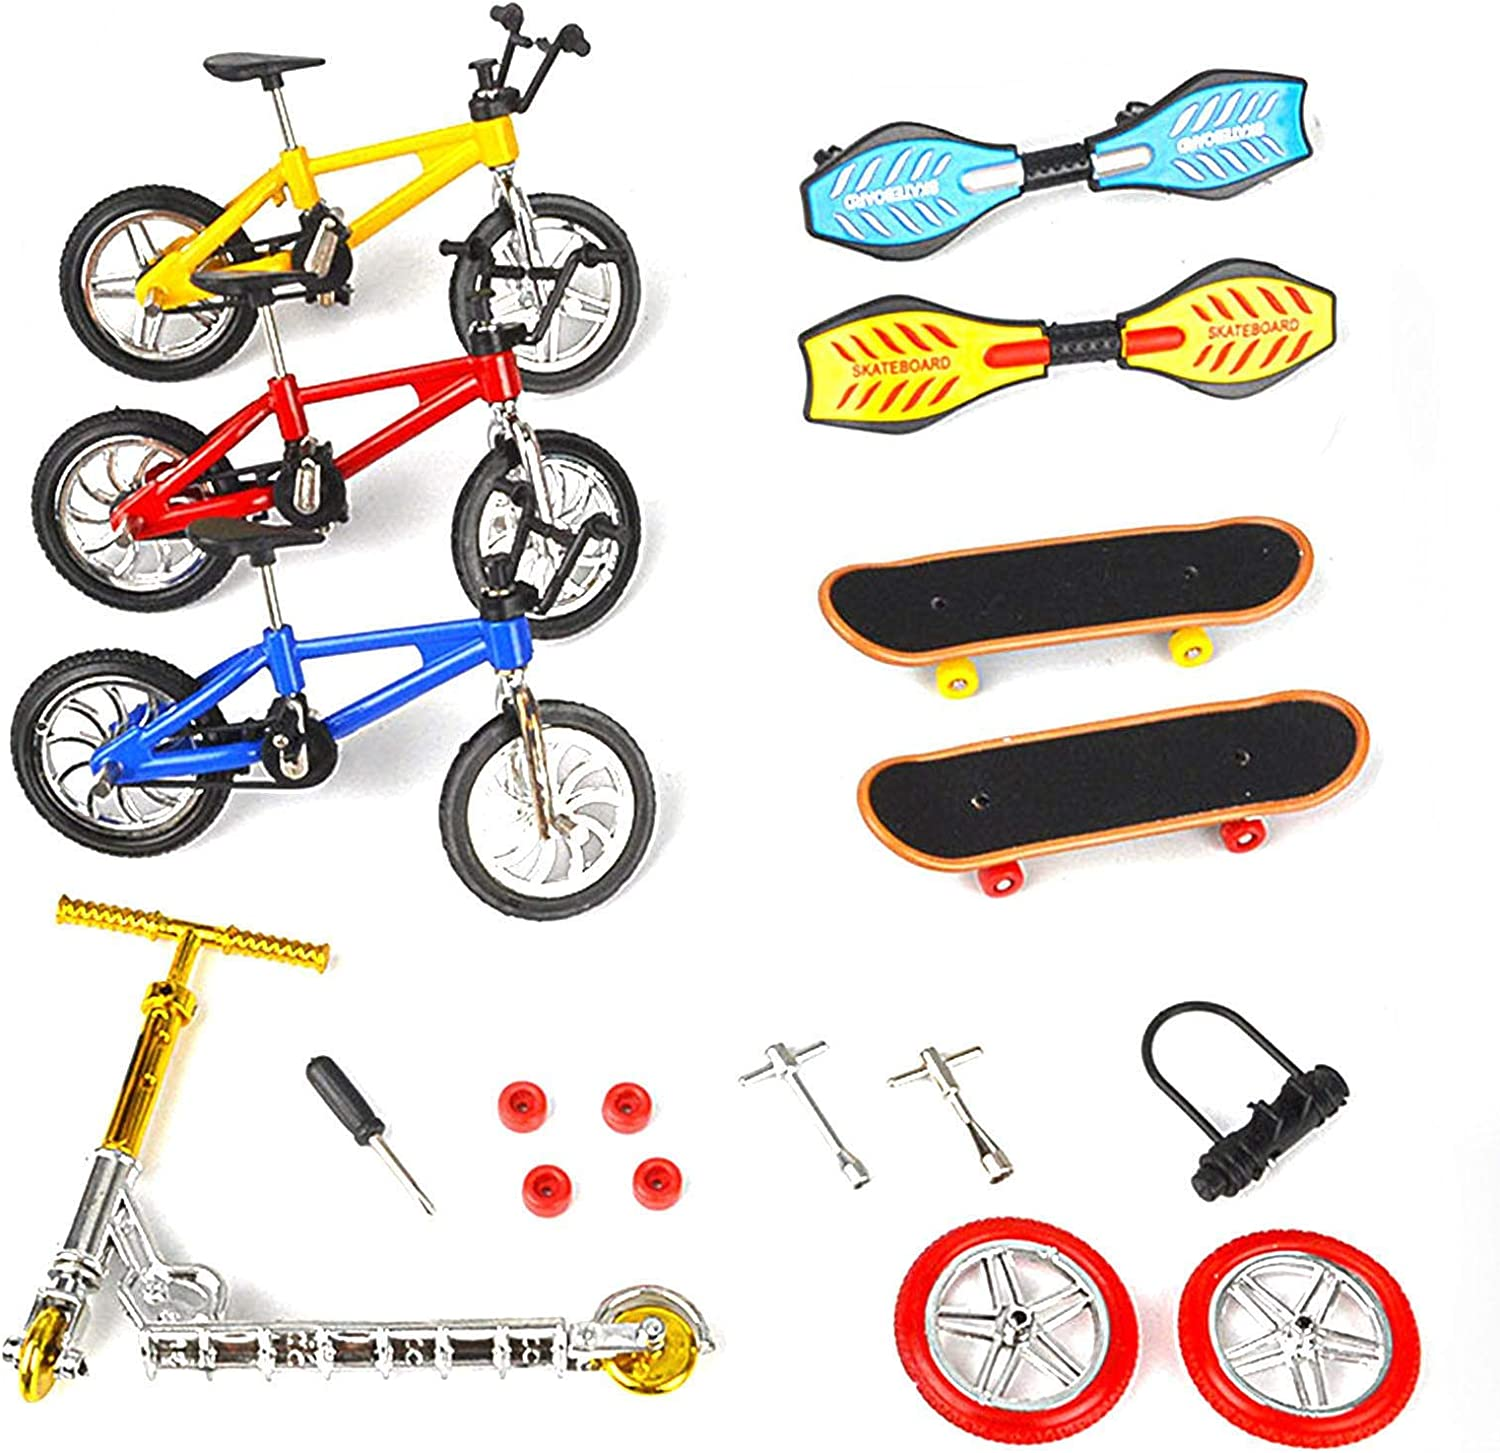 A R Mini Finger Toys Scooter Set Bikes Clearance All items in the store SALE Limited time Skateboards